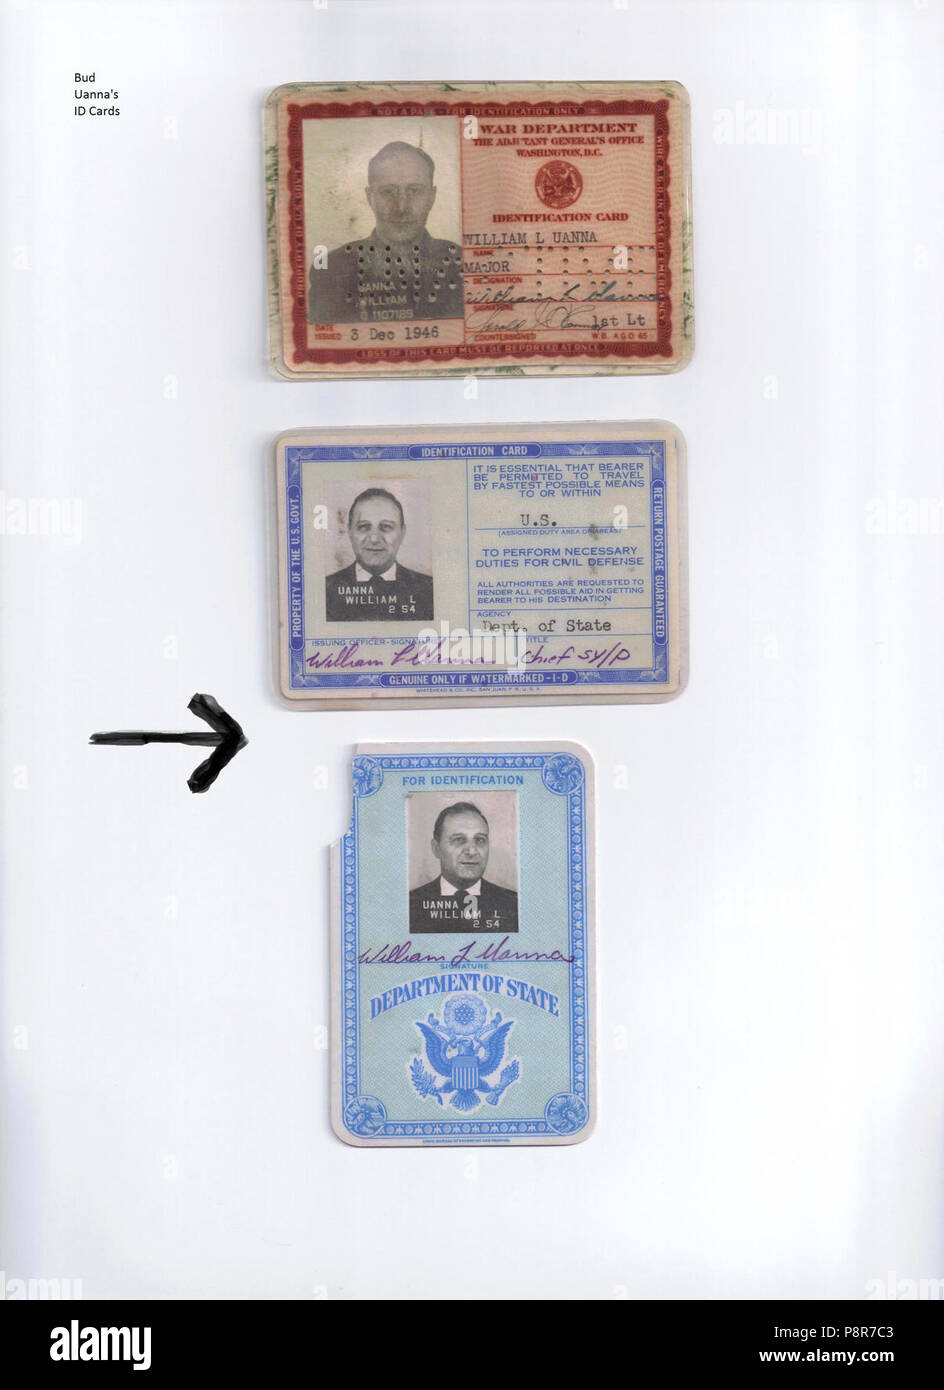 A Clue in an ongoing murder investigation Bud Uanna ID Cards p. 3. - Stock Image